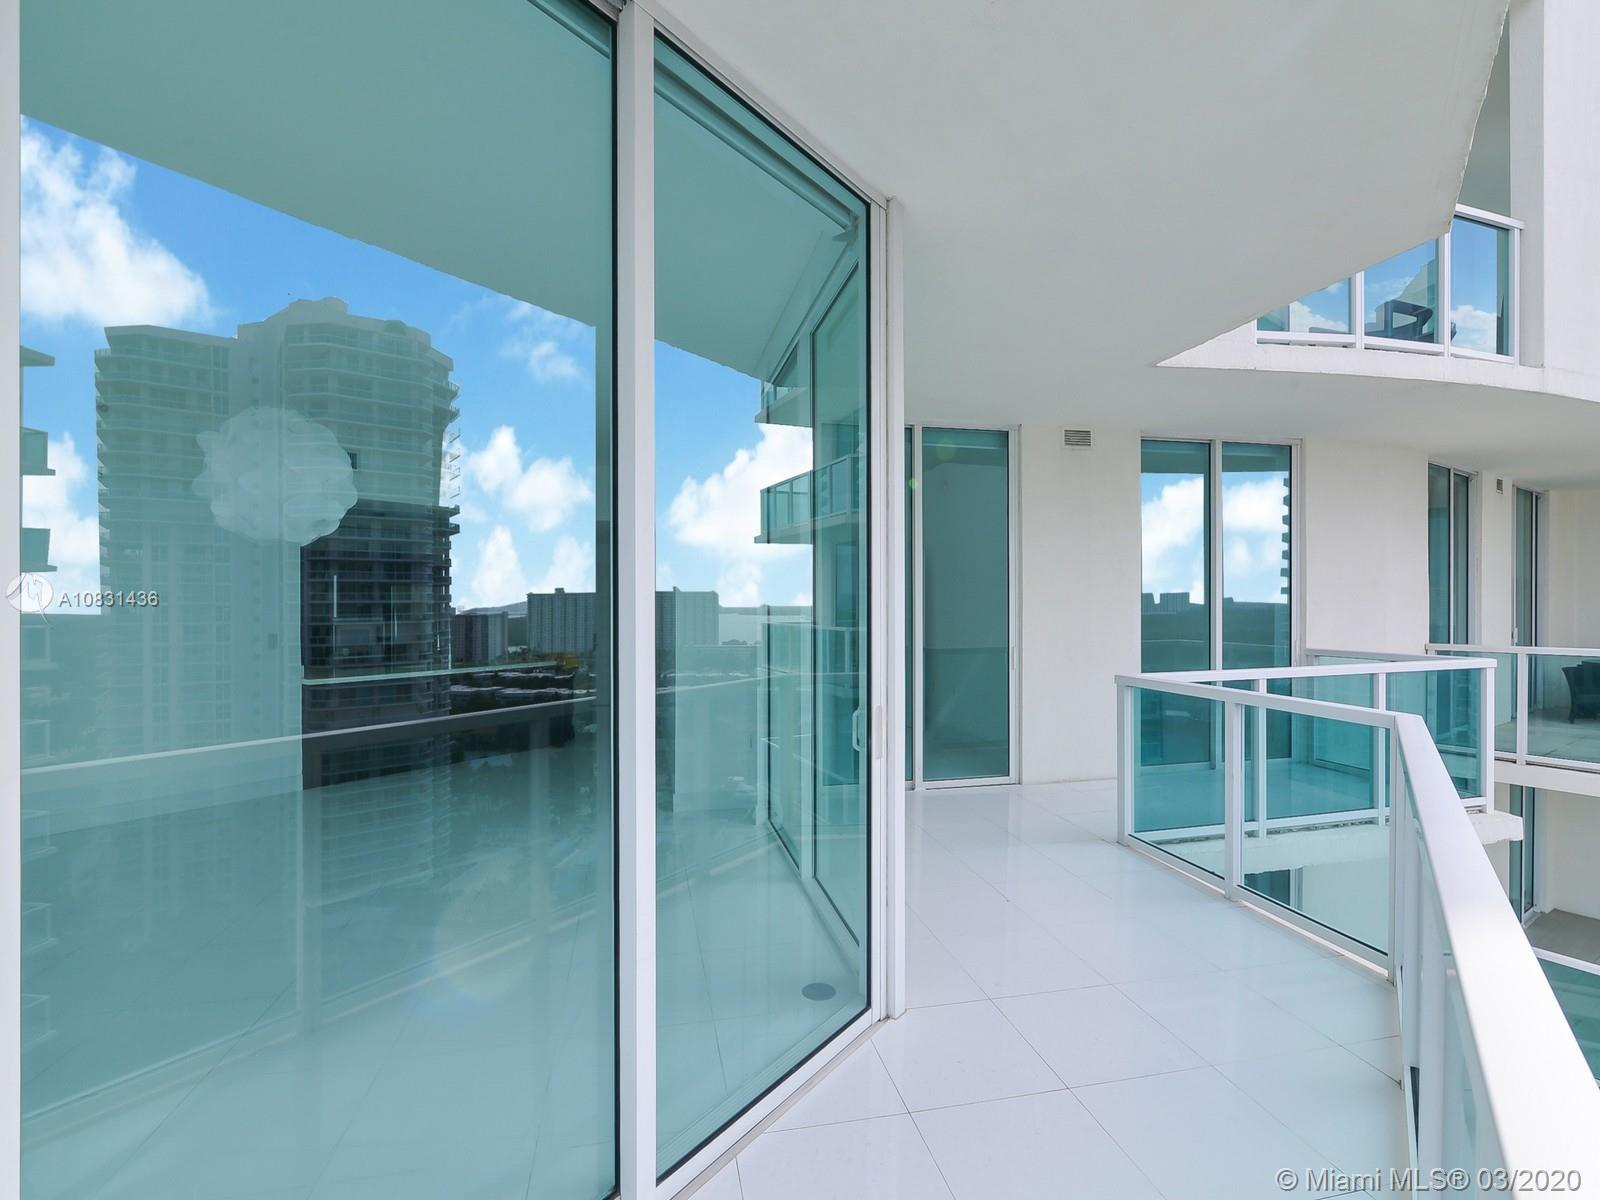 Unit is currently rented. Sought after 3-bed/2-bath condo in Tower 2 (Line 03). Best Location in the